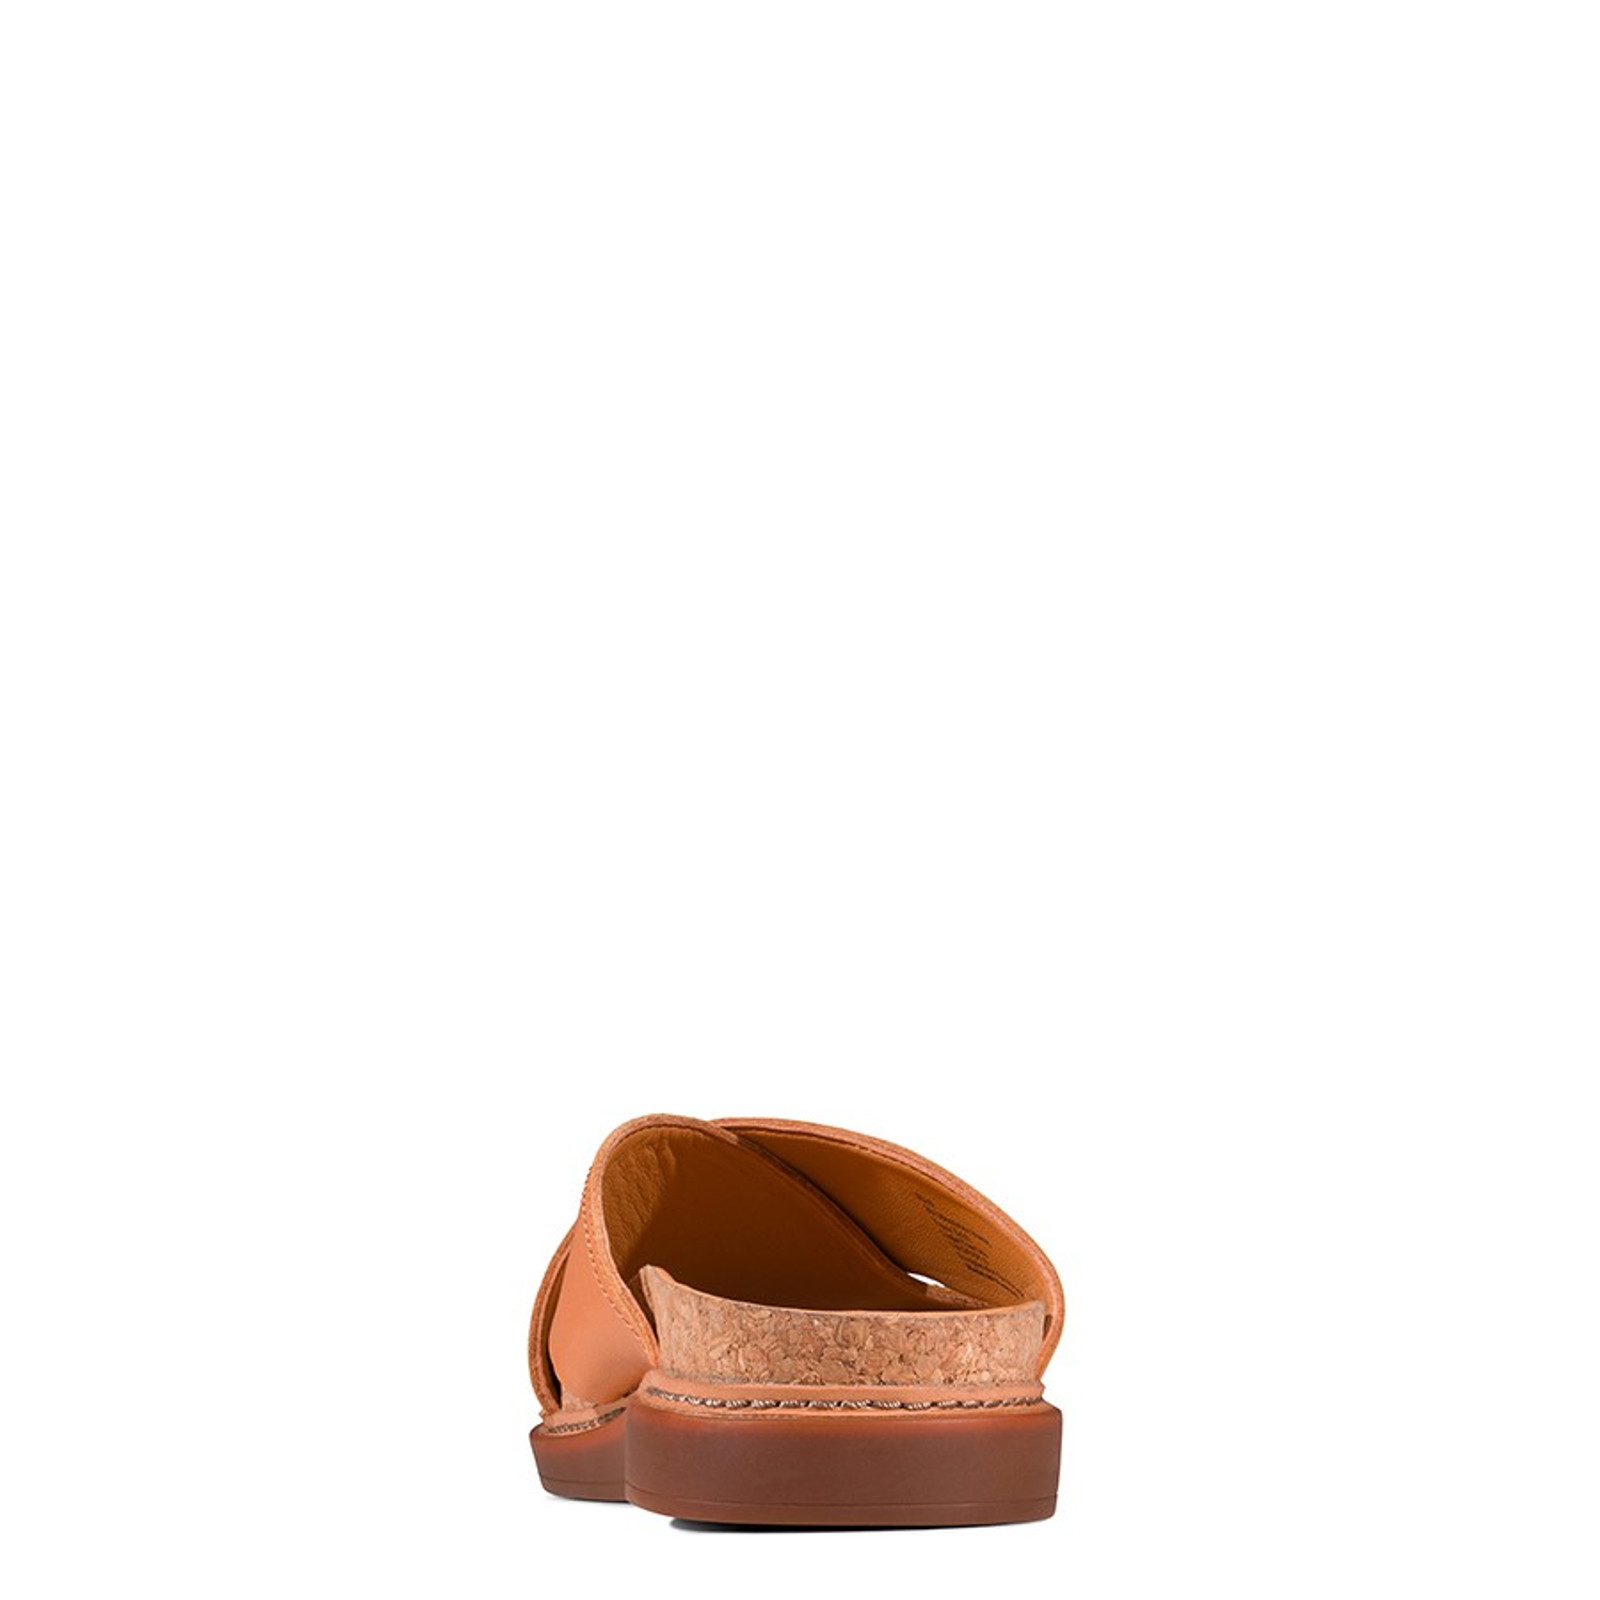 Clarks Womens TRACE DRIFT Light Tan Leather